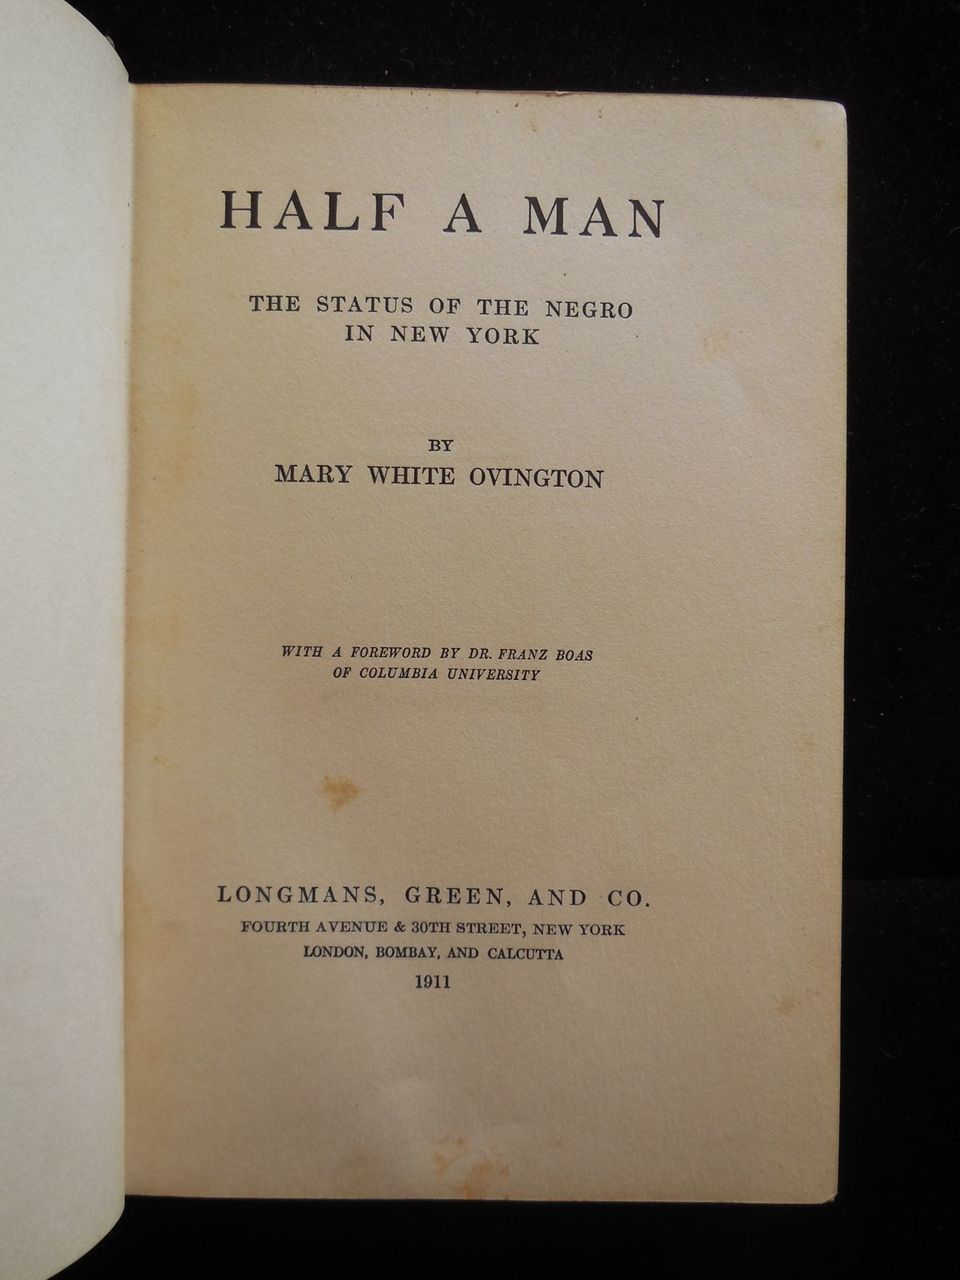 HALF A MAN: THE STATUS OF THE NEGRO IN NY, by Mary W. Ovington - 1911 [1st Ed] *Provenance*